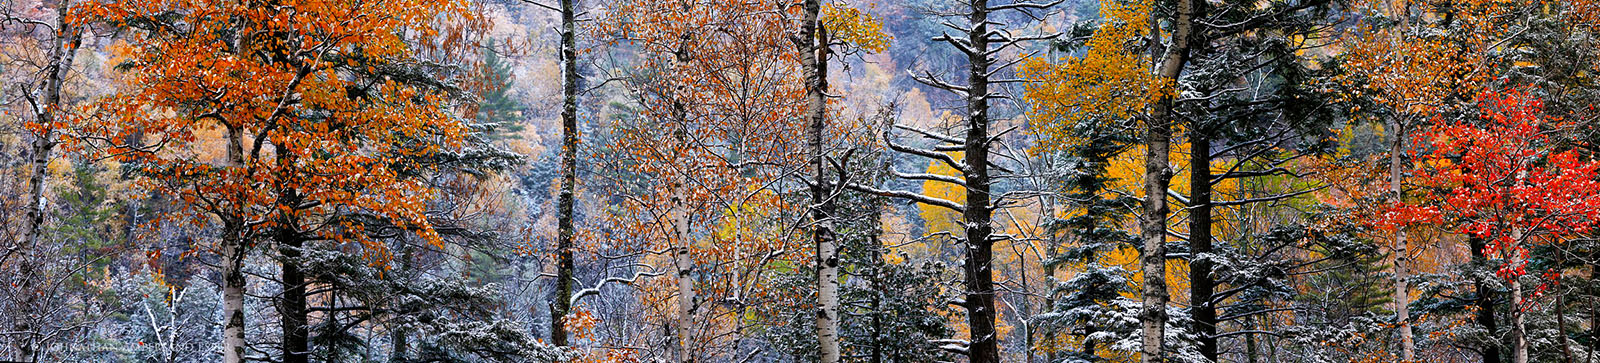 Chapel Pond,autumn snowfall,autumn,snow,snowfall,snow dusting,October,forest,Adirondack,Adirondack forest,Johnathan Esper,panorama,fall foliage